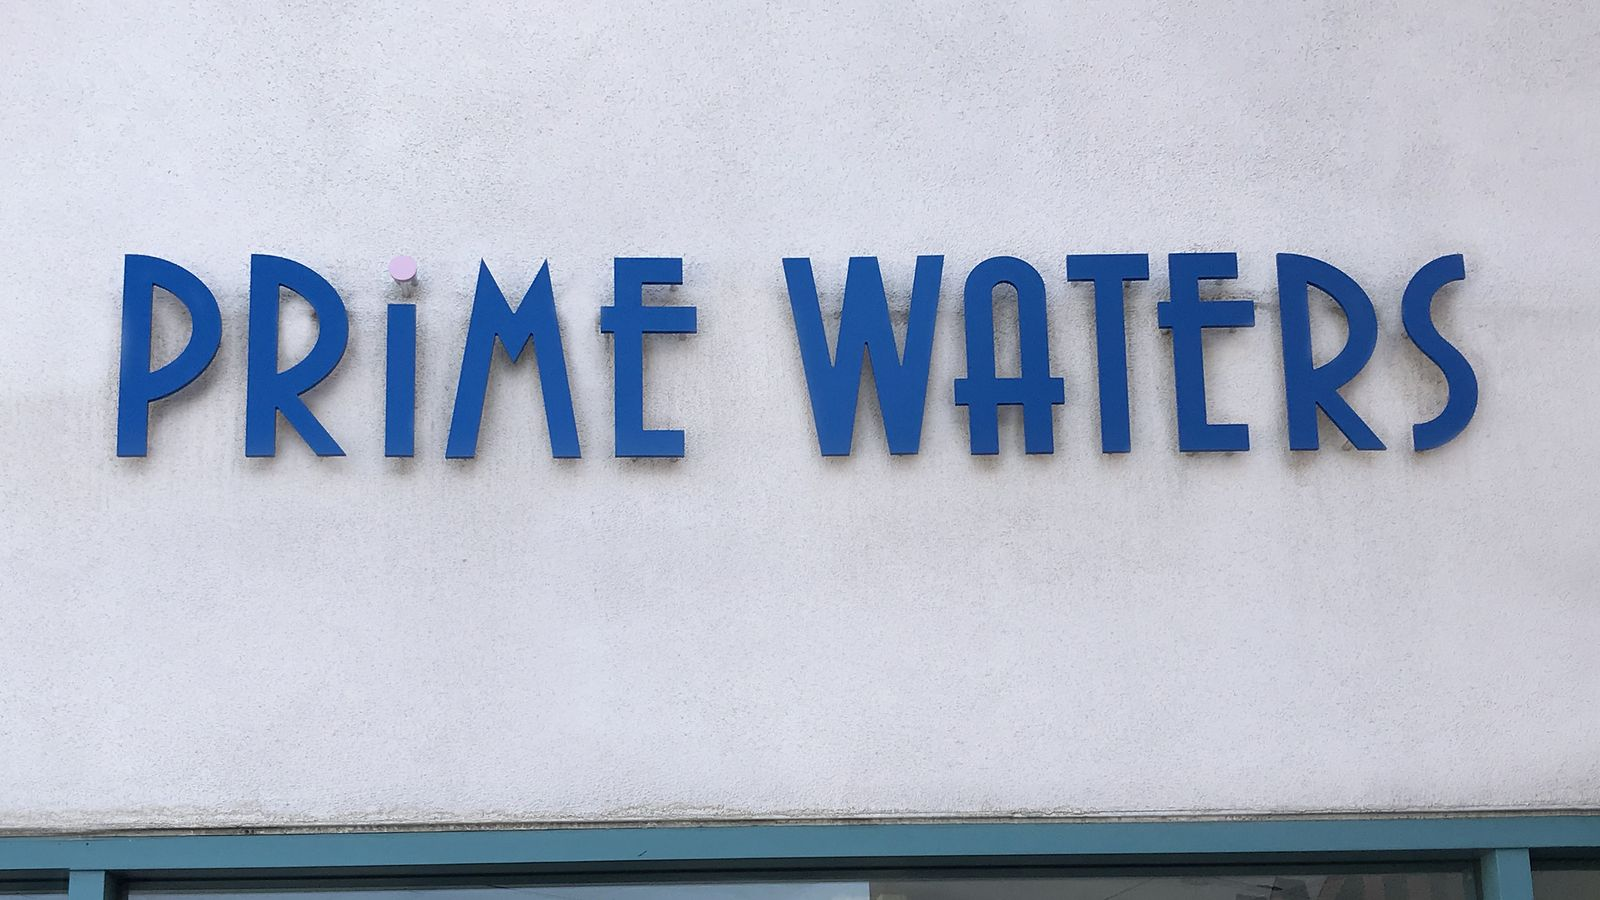 Prime Waters 3D letters